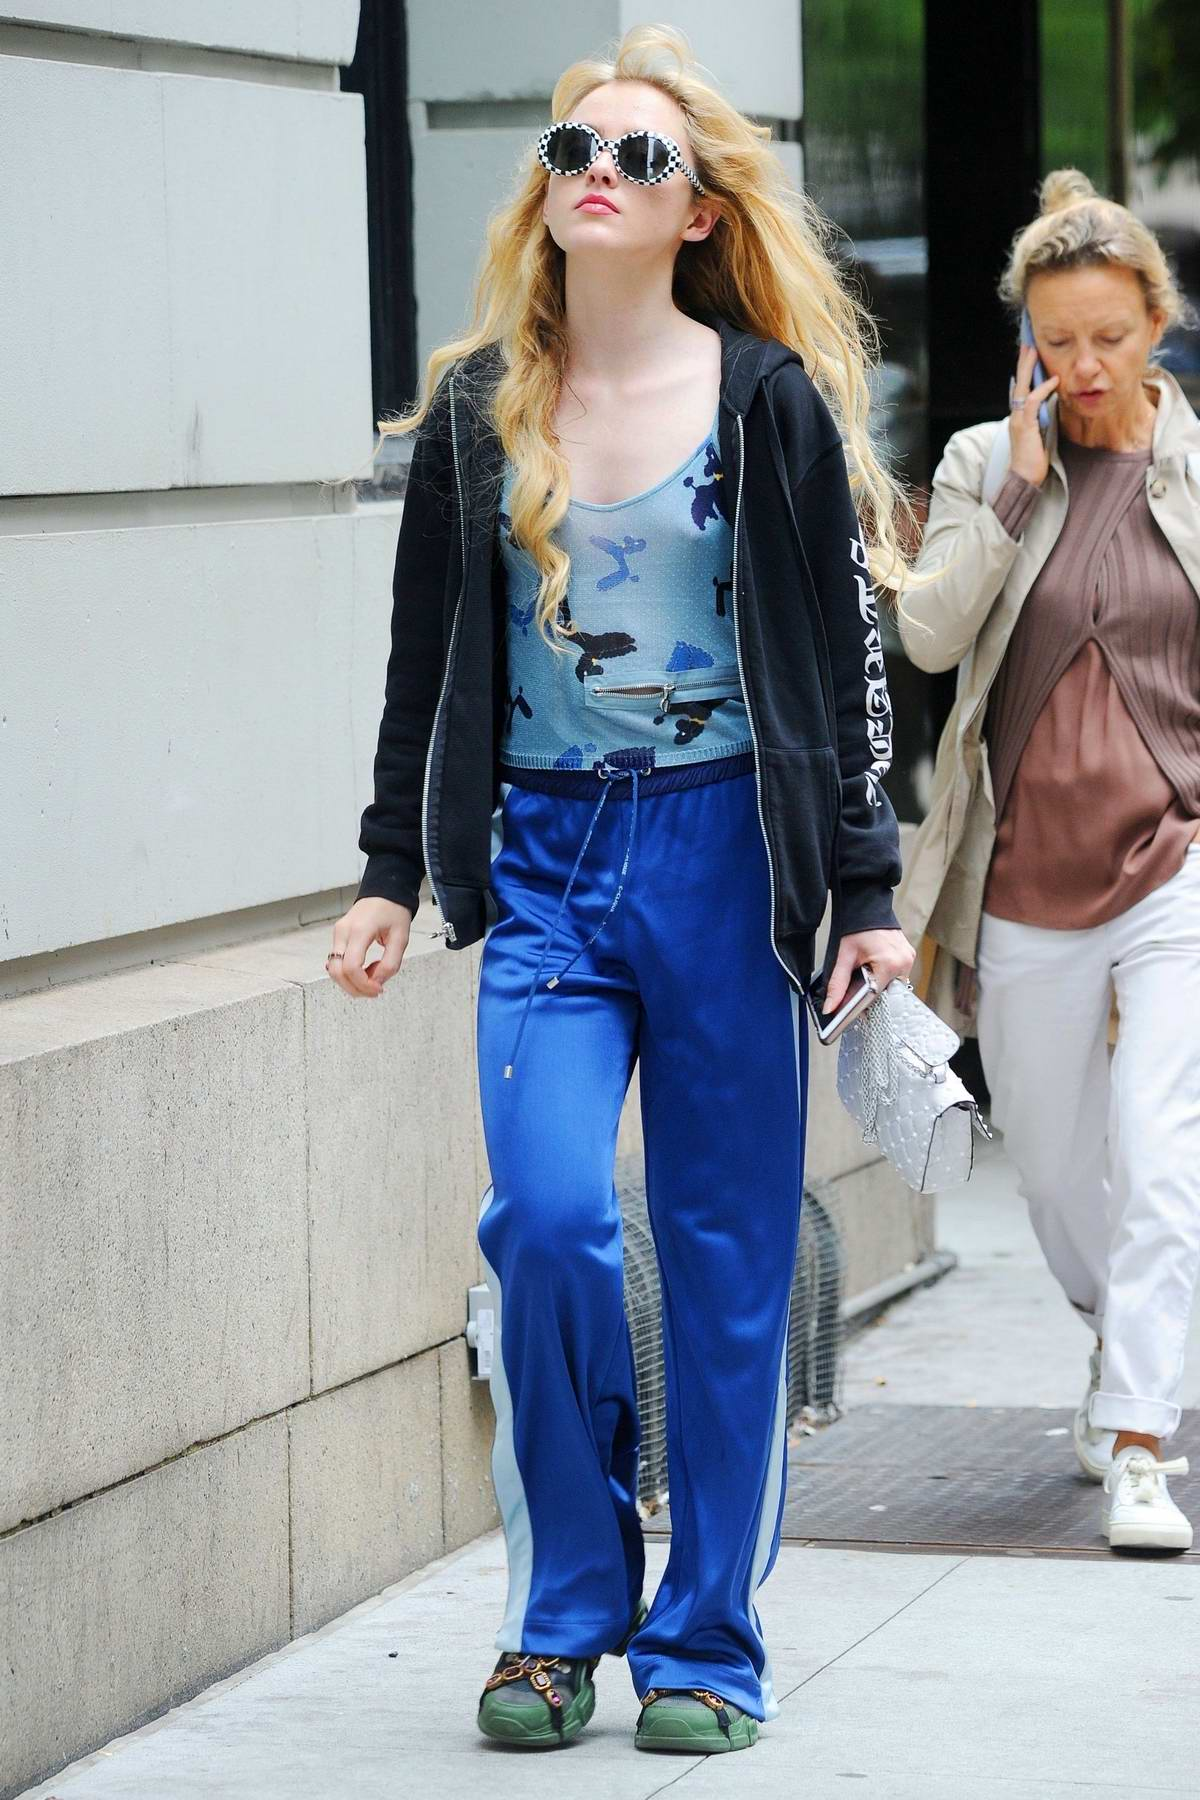 Kathryn Newton rocks a pair of cool checkered sunglasses and Gucci sneakers while out with a friend in New York City